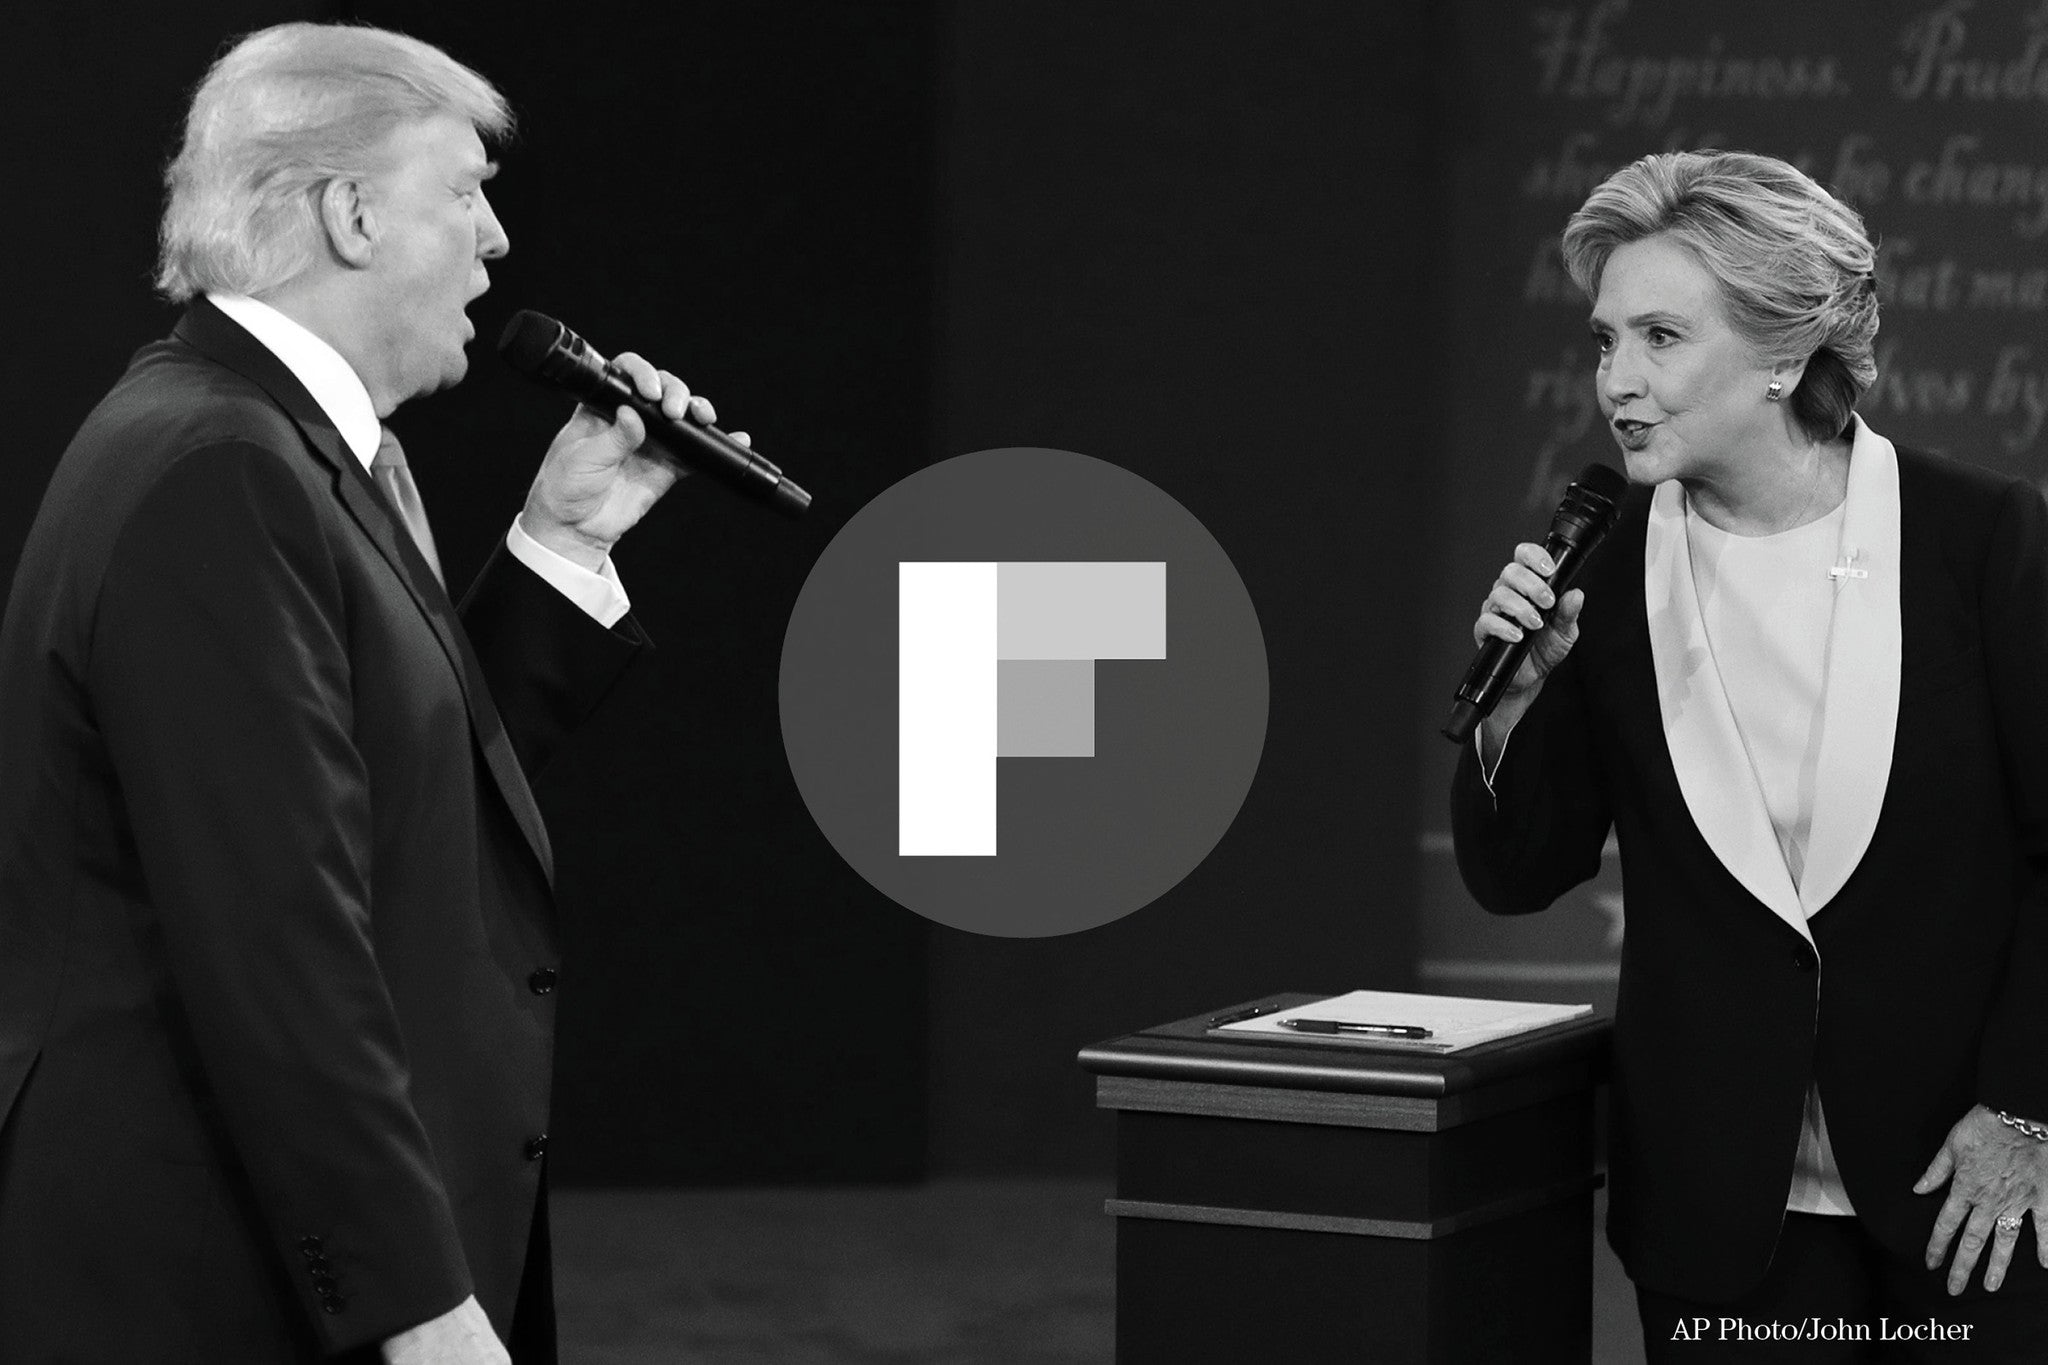 Flipboard: Debating the Debate